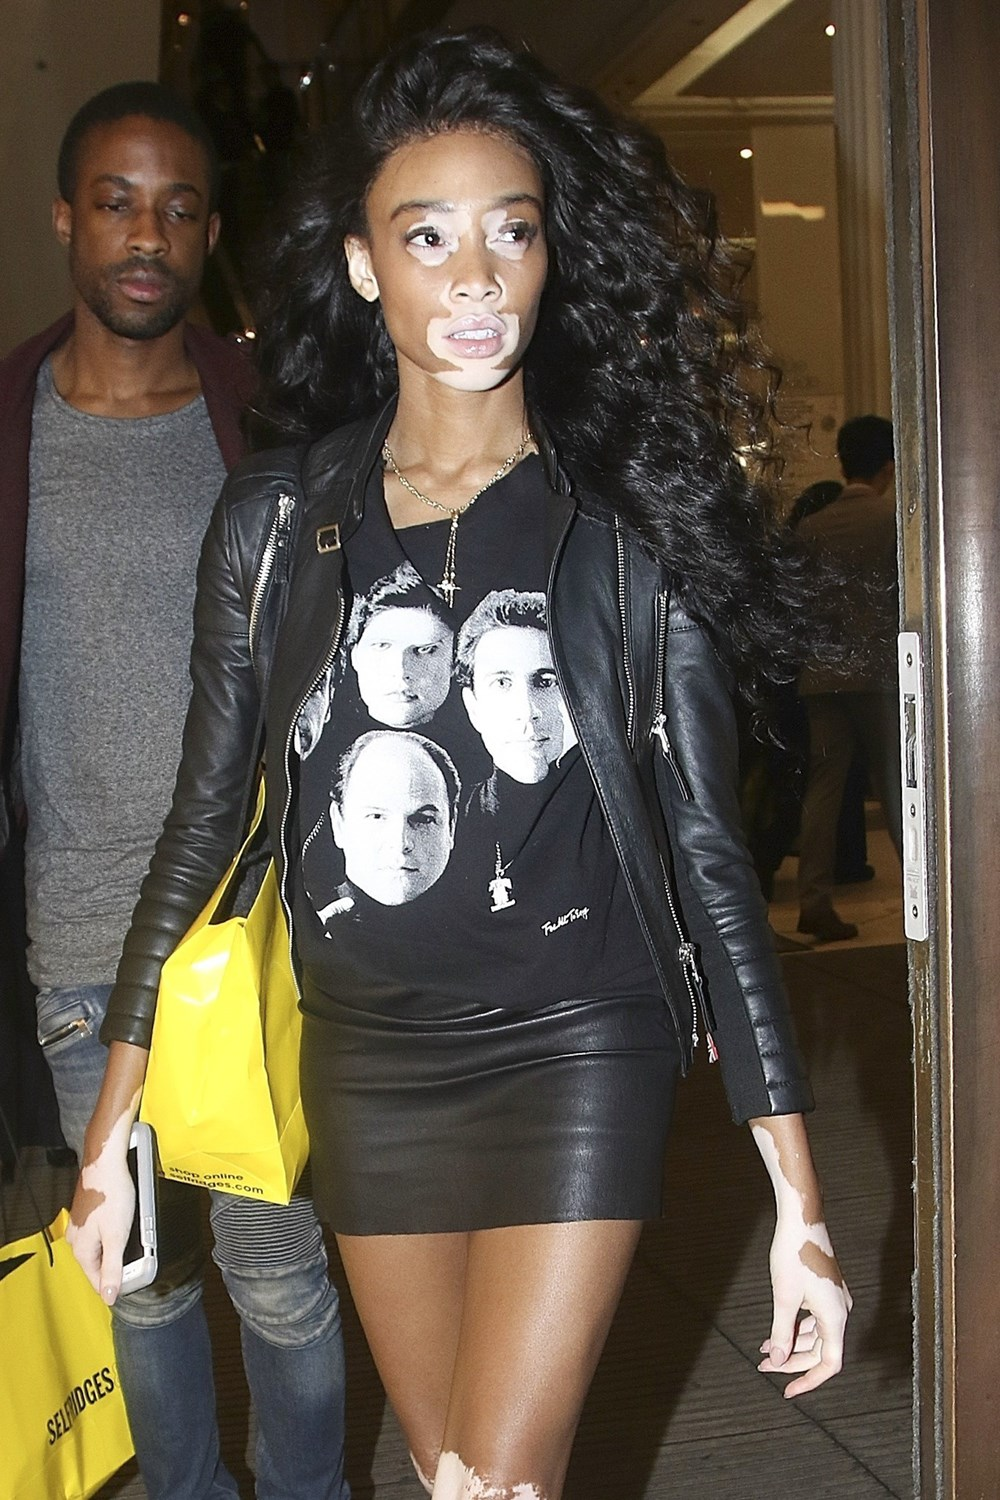 Winnie Harlow: Canadian Model With Rare Skin Condition